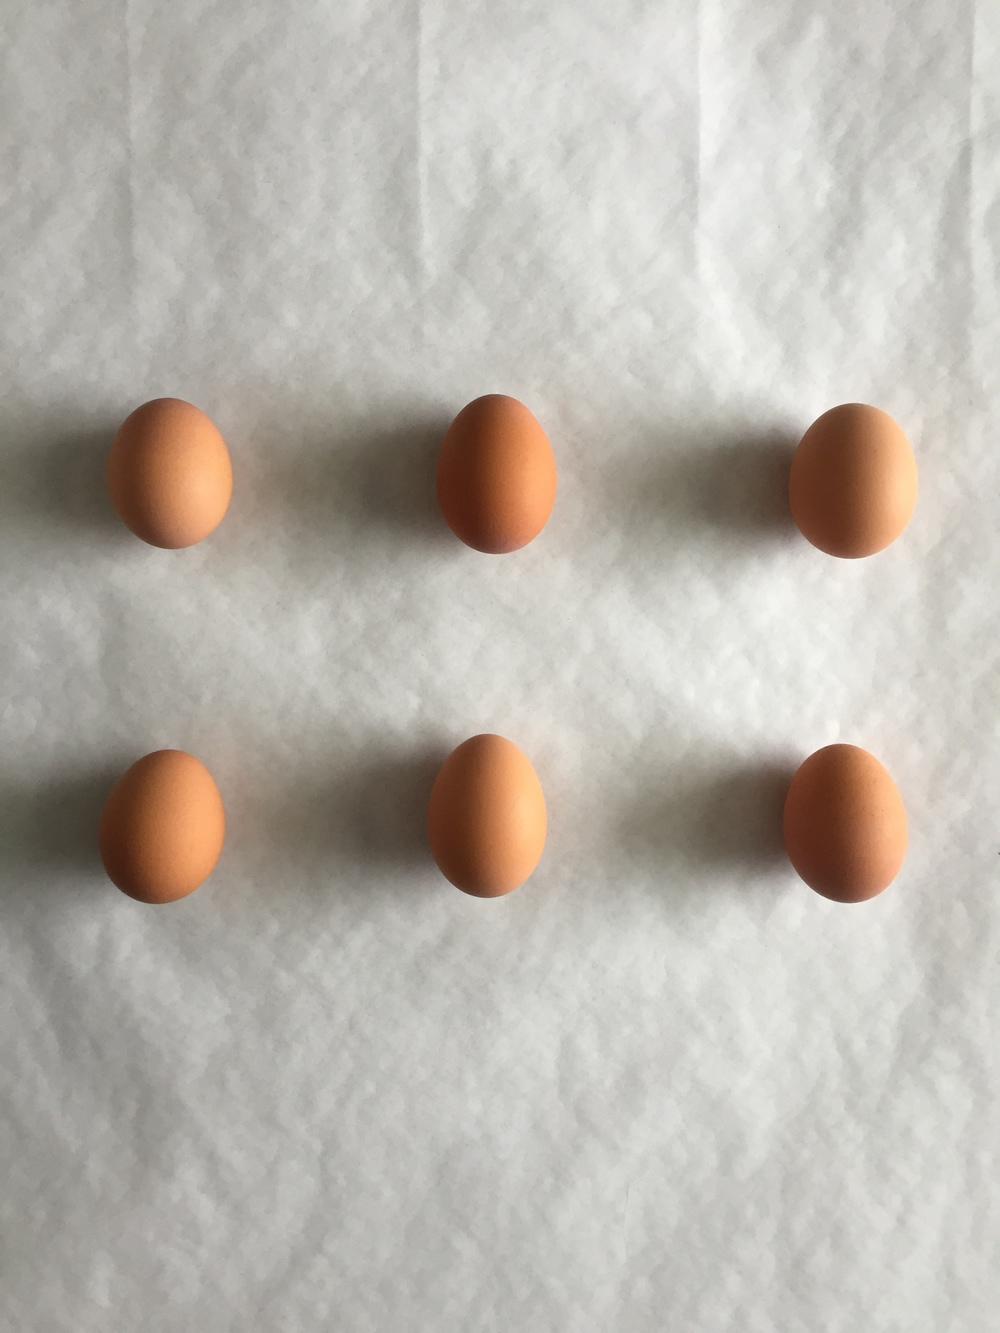 Two of these eggs may or may not have been eaten for breakfast immediately following this shoot.